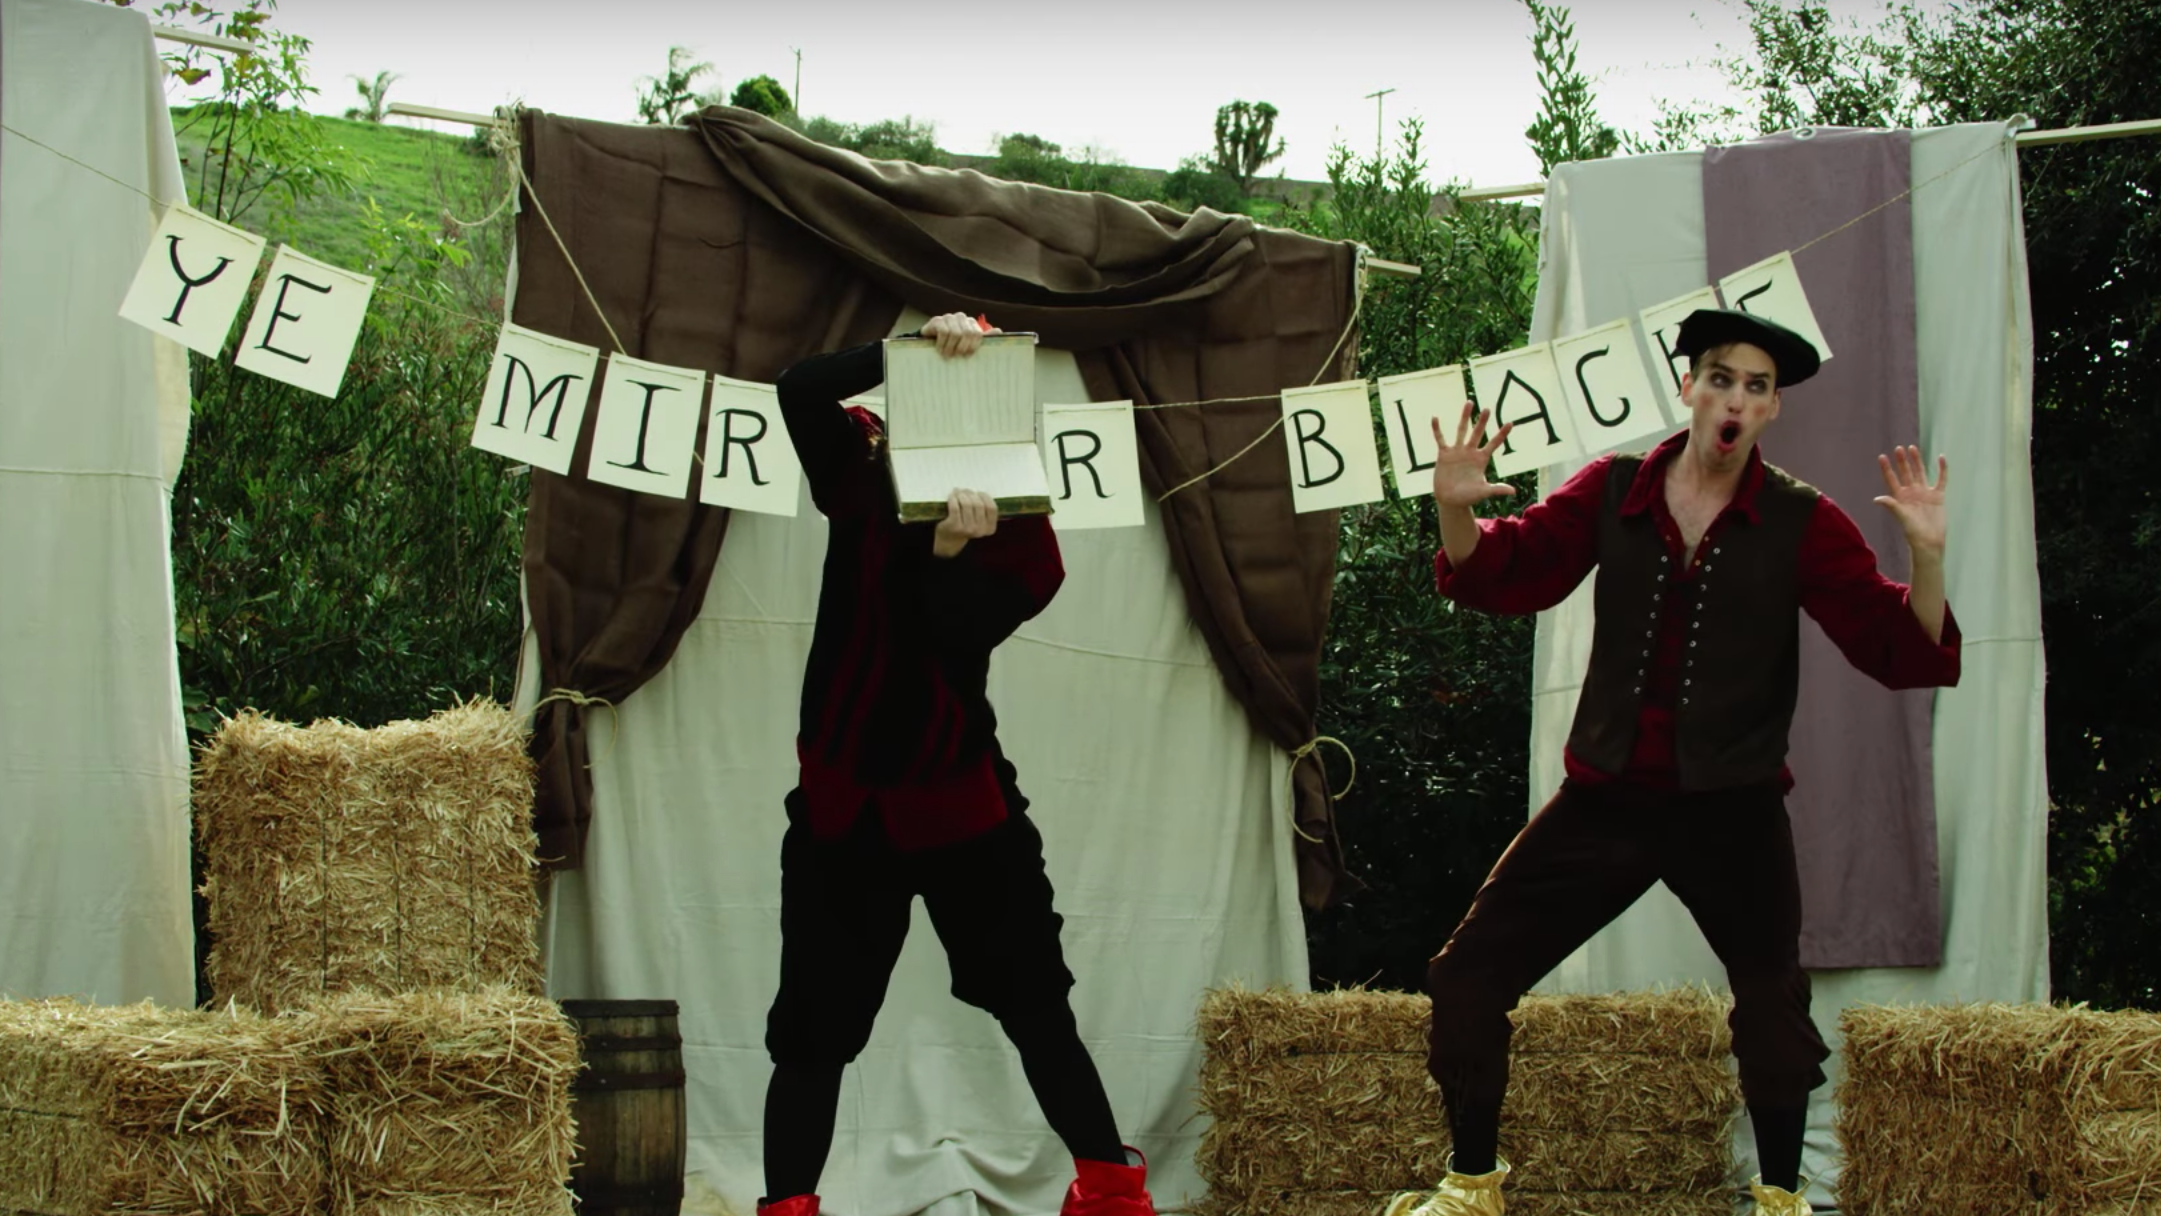 This Hilarious Video Imagines Black Mirror As A Morality Play In The Middle Ages